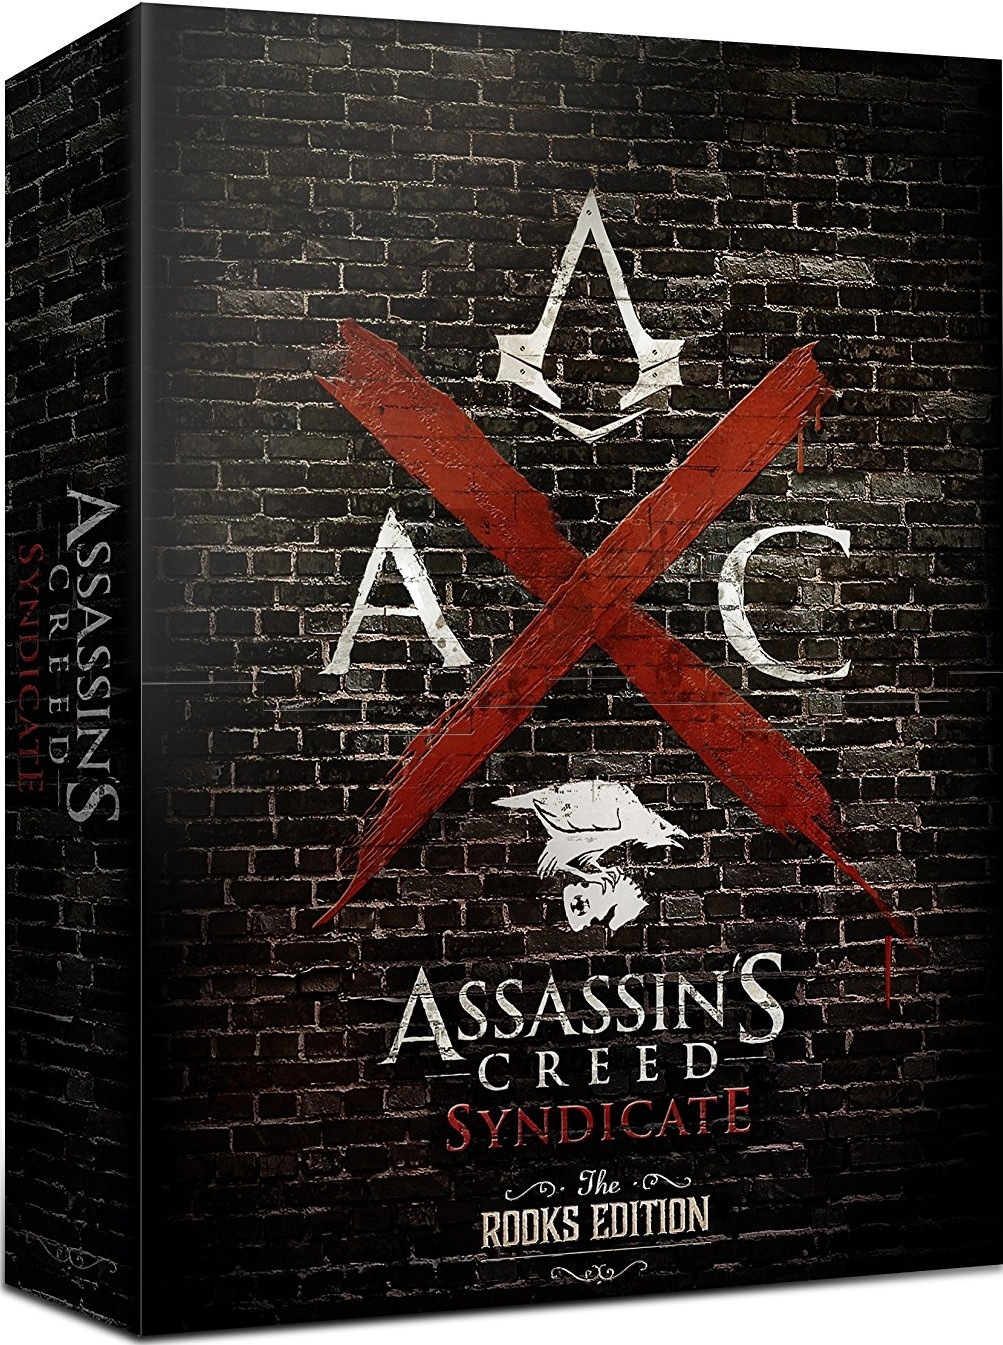 Assassins Creed Syndicate Rooks Edition (Magyar Felírattal) - PlayStation 4 Játékok